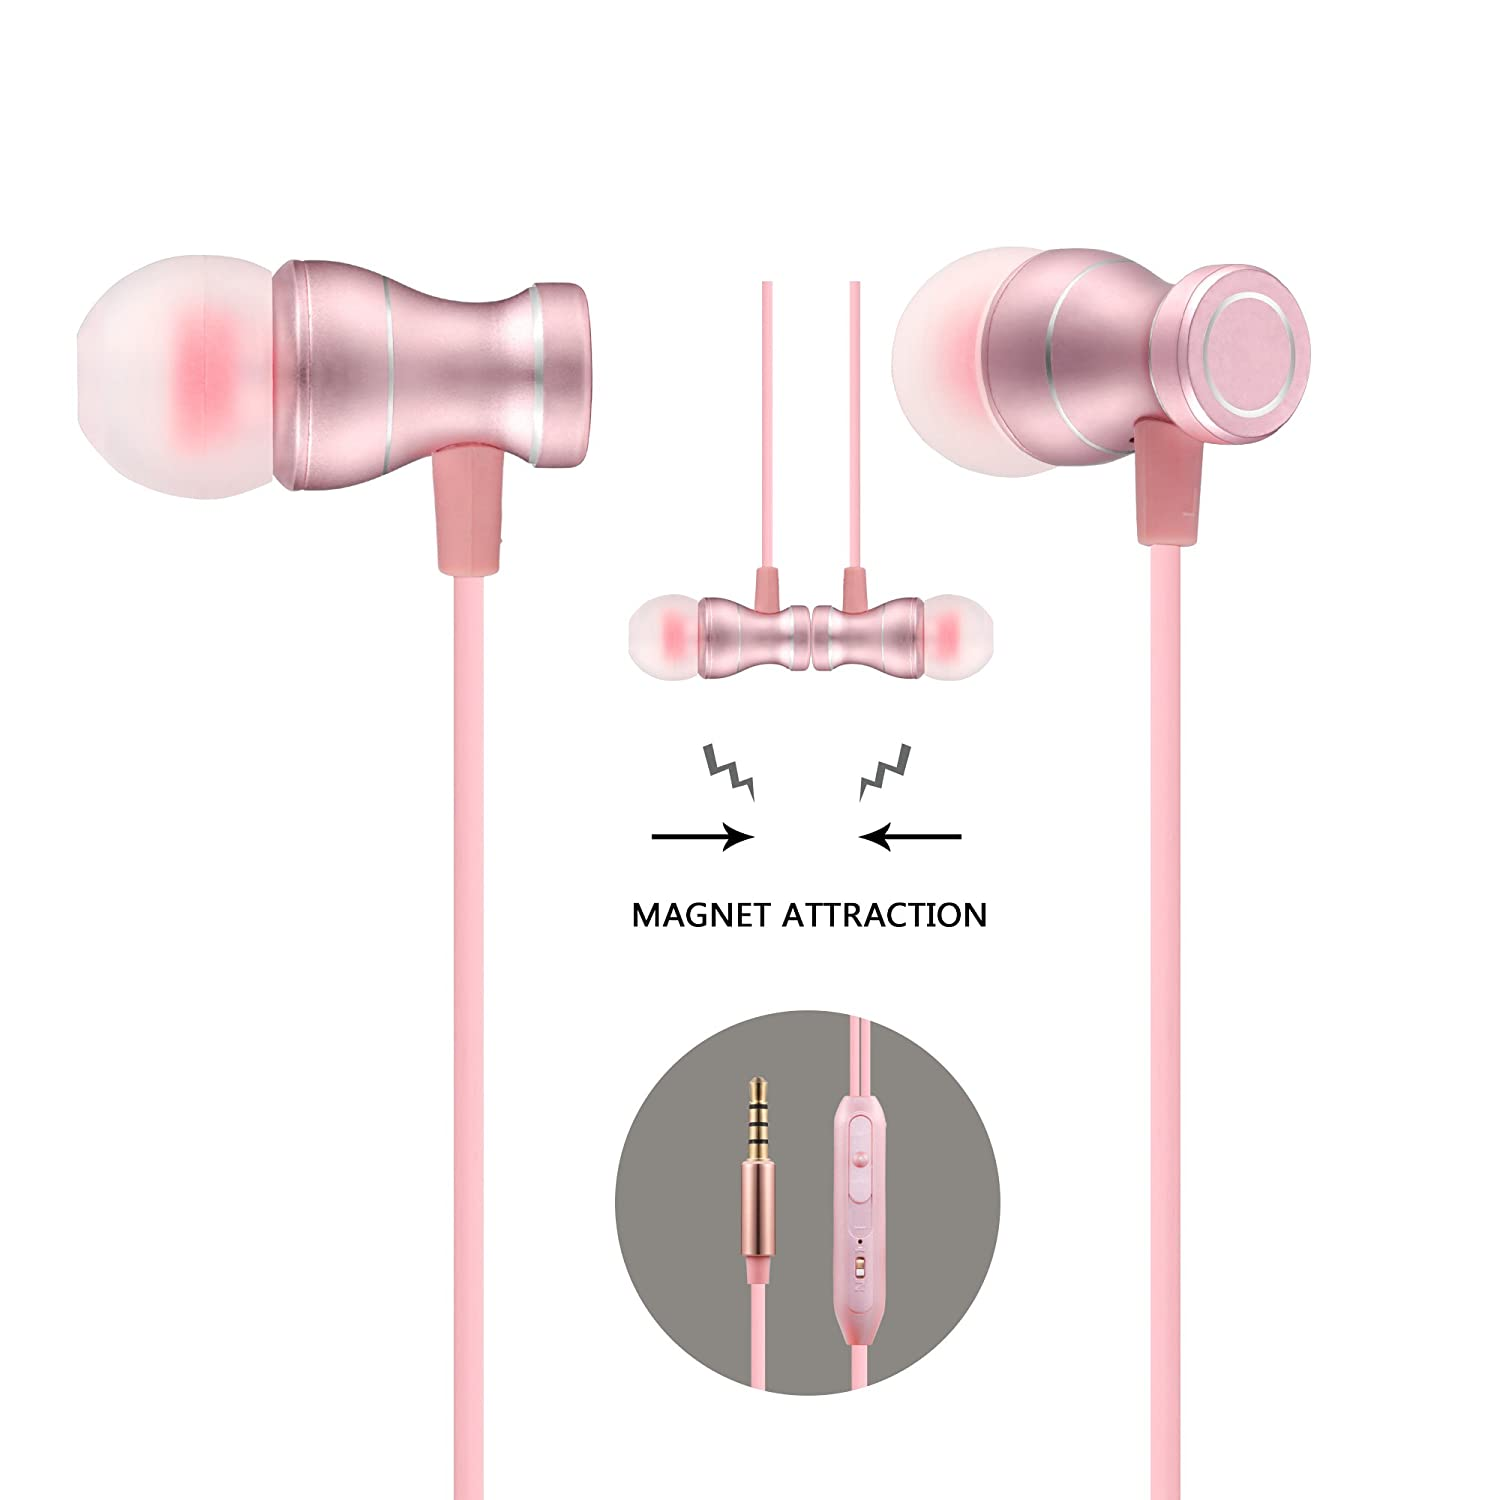 Acode In Ear Earbuds Earphones Headphones, 3.5mm Metal Housing Magnetic Best Wired Bass Stereo Headset Built In Mic/Hands Free/Volume Control+Carrying Case+3 Pair Earbuds (Rose Gold) by Acode